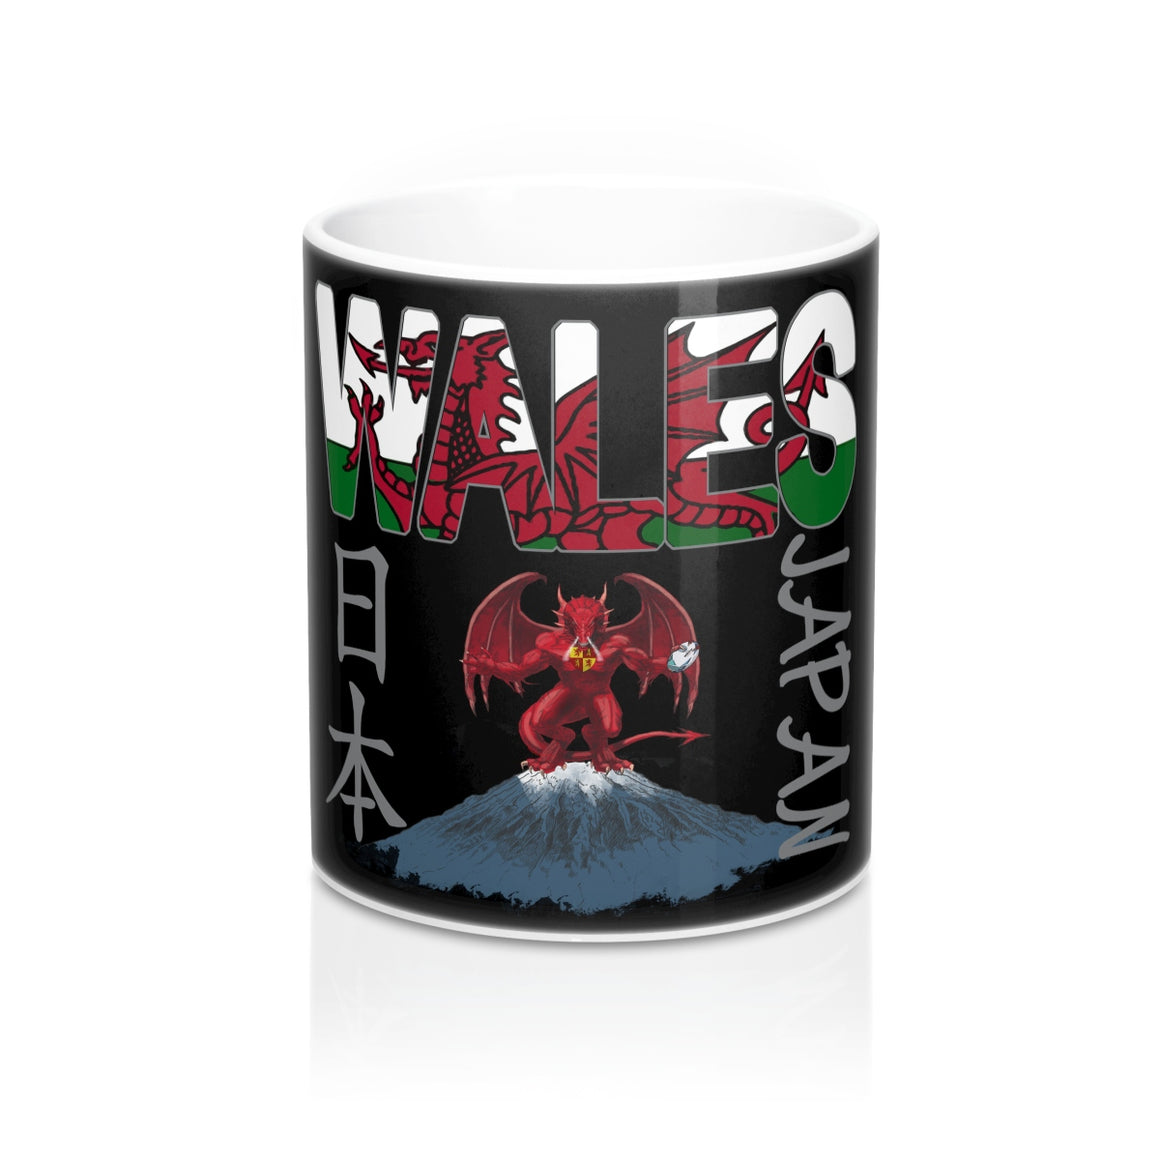 Wales Rugby World Cup 2019 Japan Mug 11oz Black